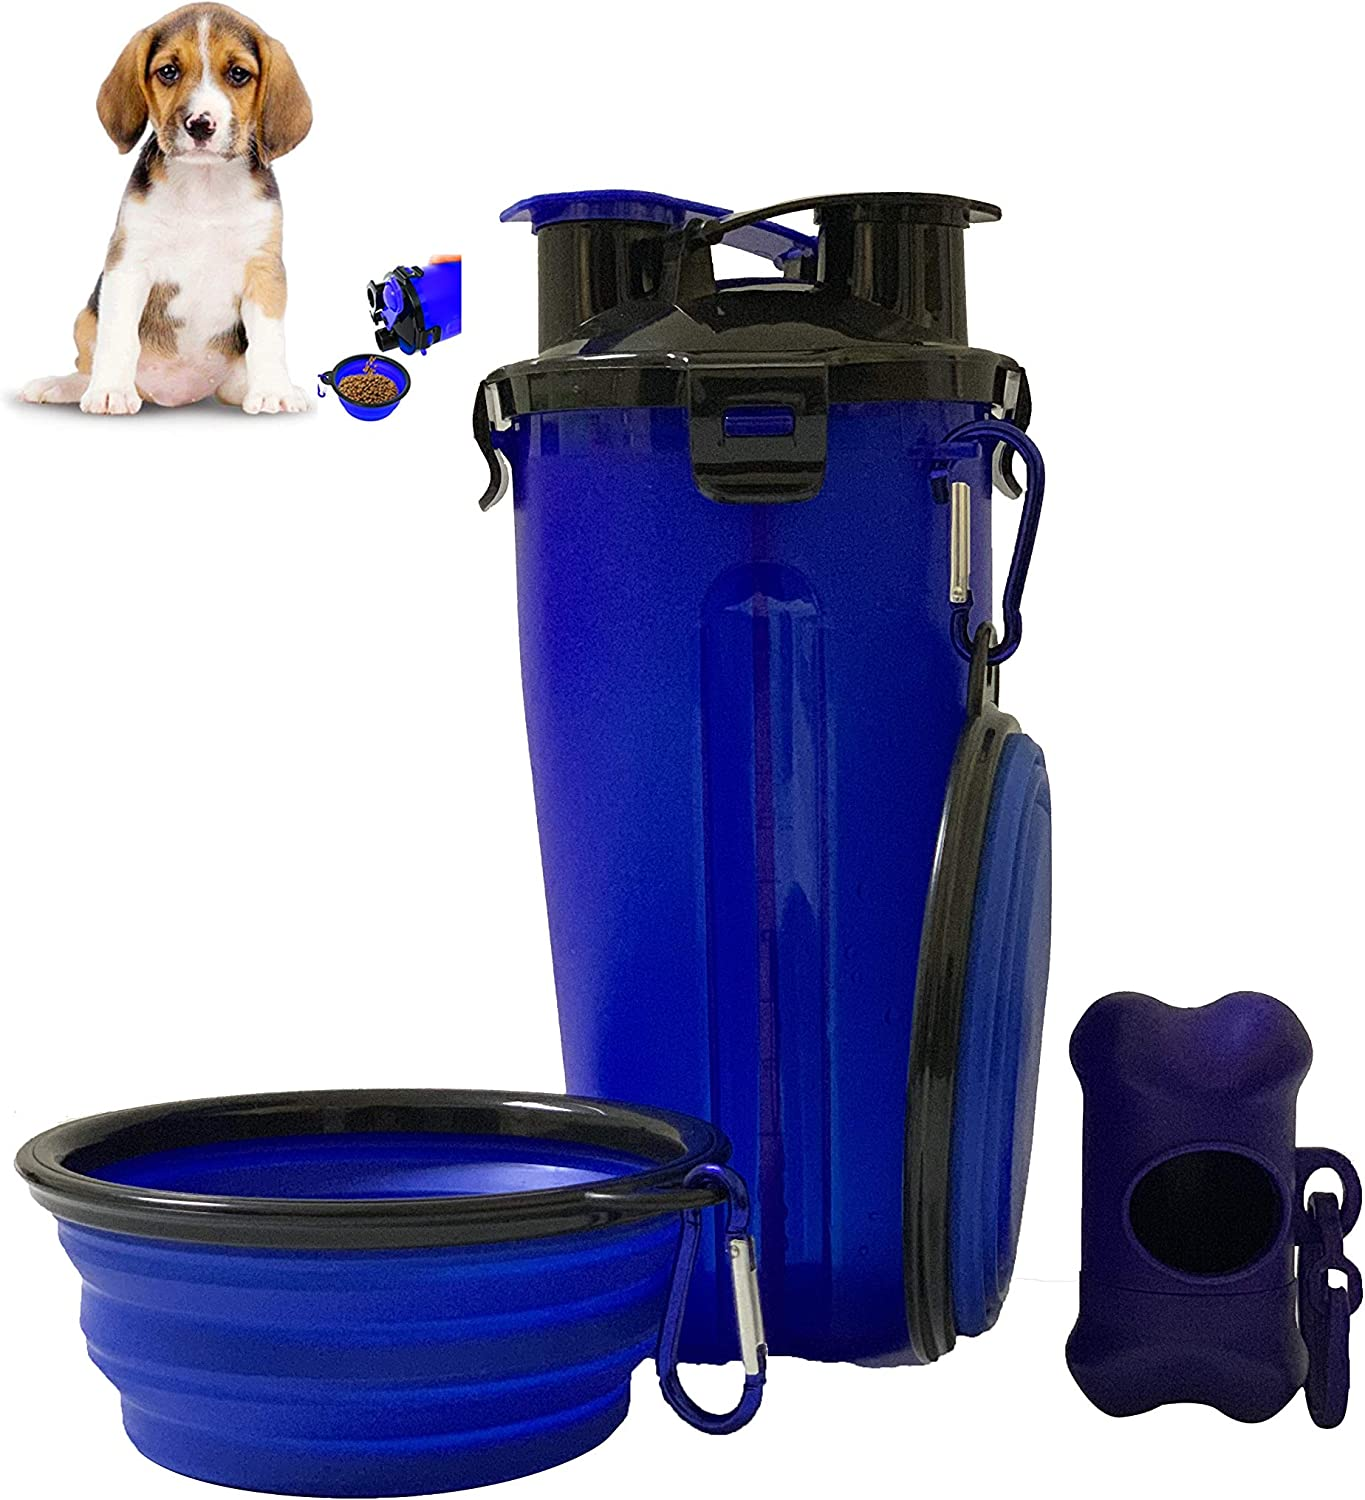 N/H 2in1 Dog Water Bottle Pet Food Container with 2 Collapsible Dog Bowls and Cute Poop Bag Storage Tool for Walking Travelling Camping, Portable Drinking Bottle for Cat Puppy